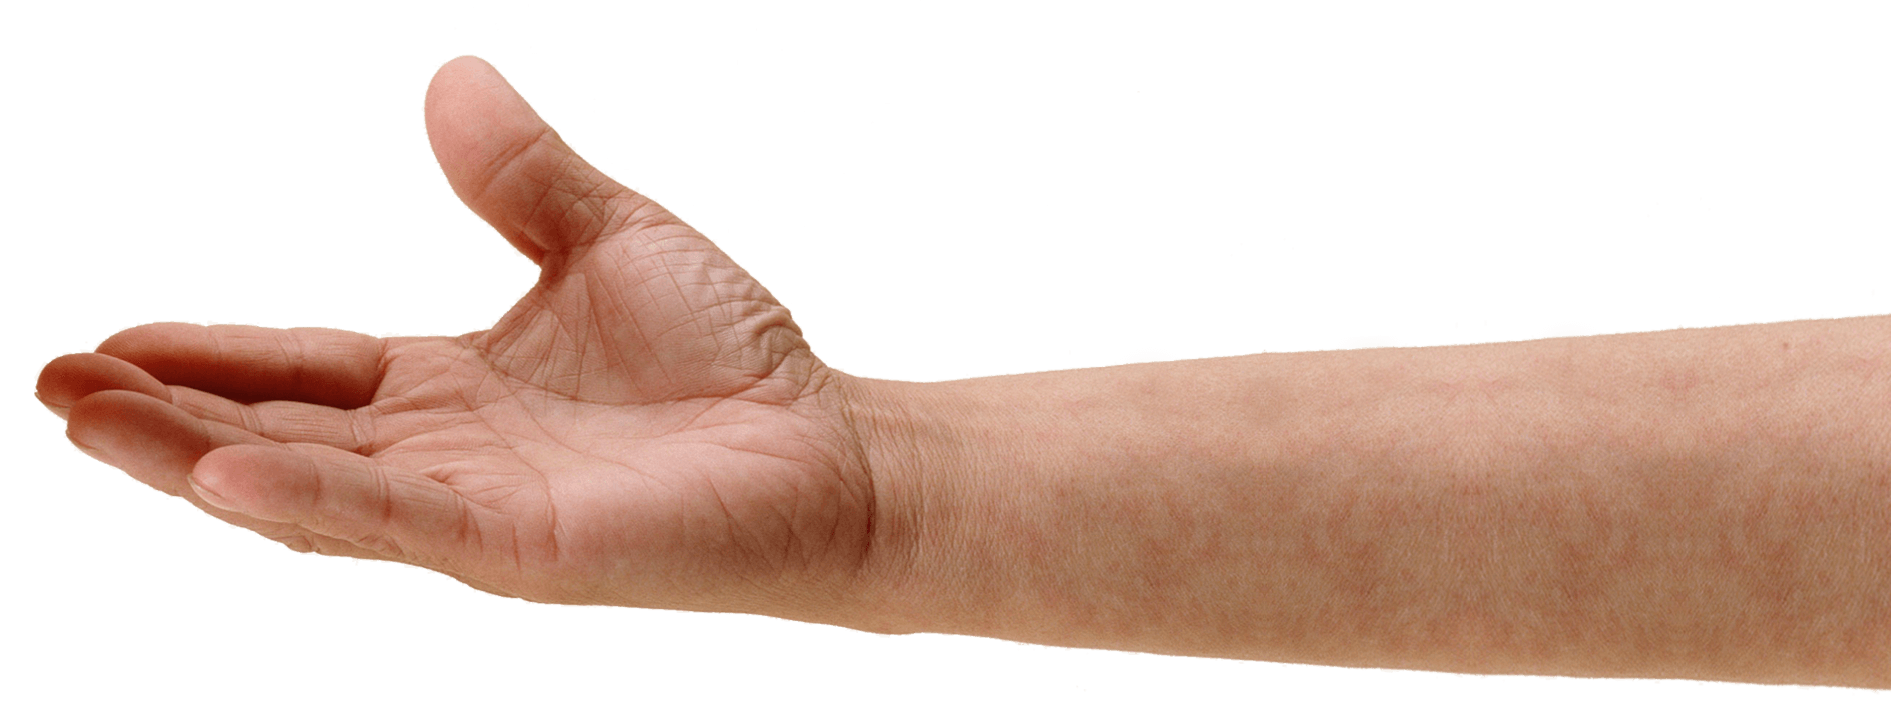 Arms reaching out png. Hand arm image